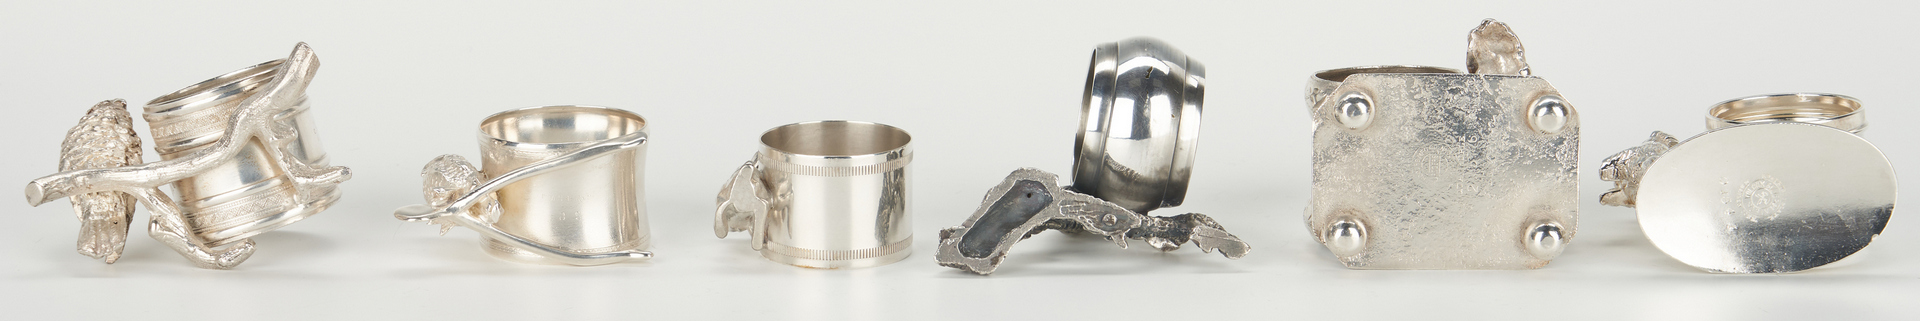 Lot 251: 12 Silverplated Napkin Rings, incl. Animals